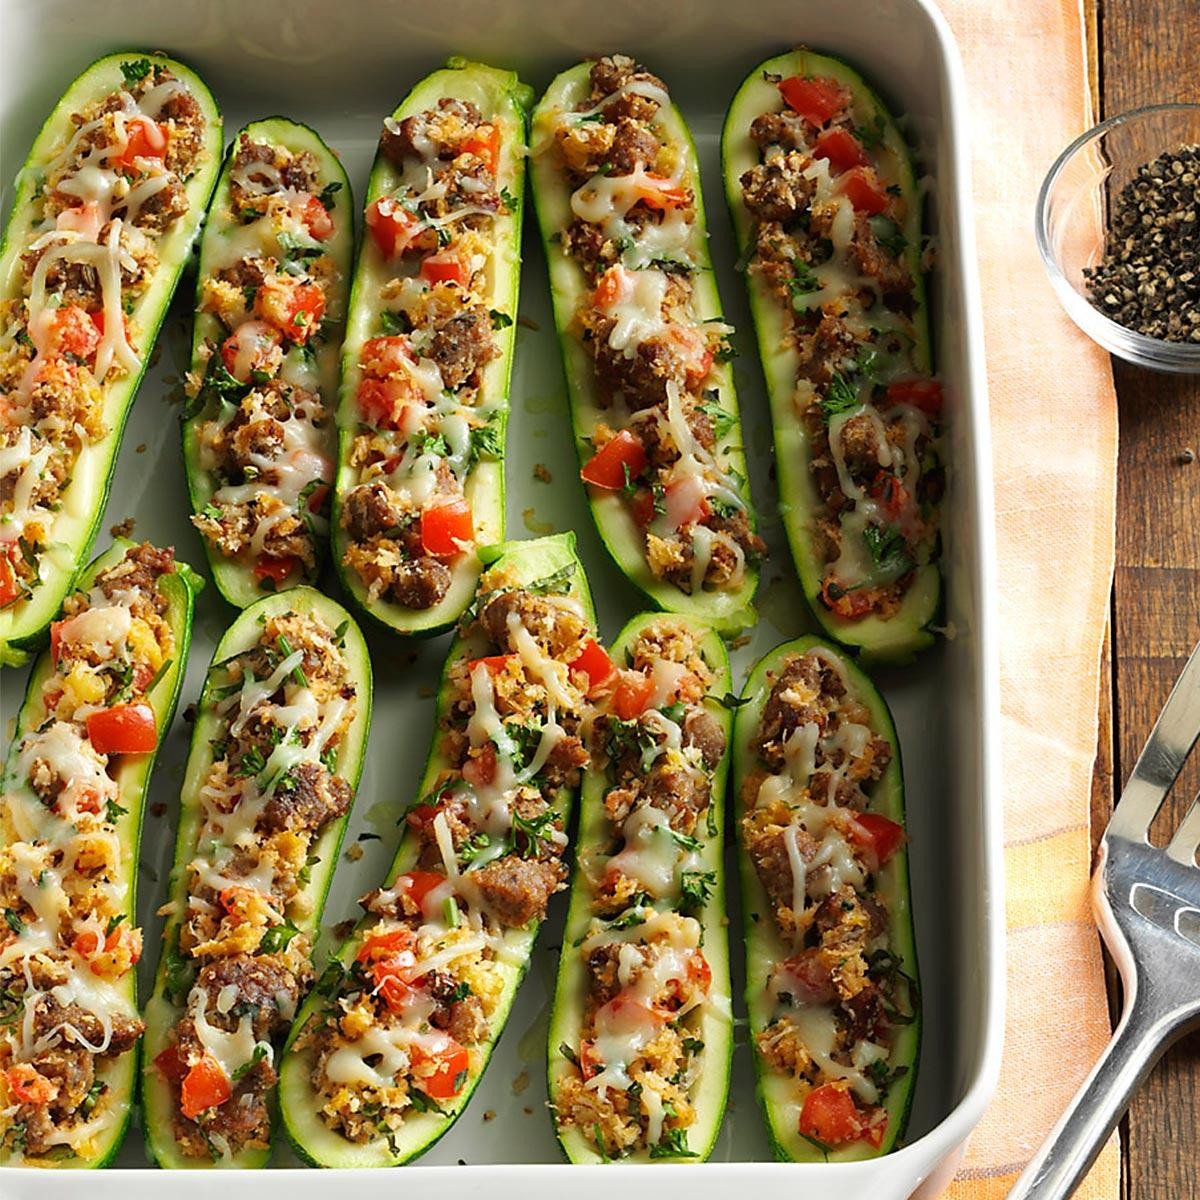 Zucchini Recipes Healthy the top 20 Ideas About Healthy Stuffed Zucchini Recipe